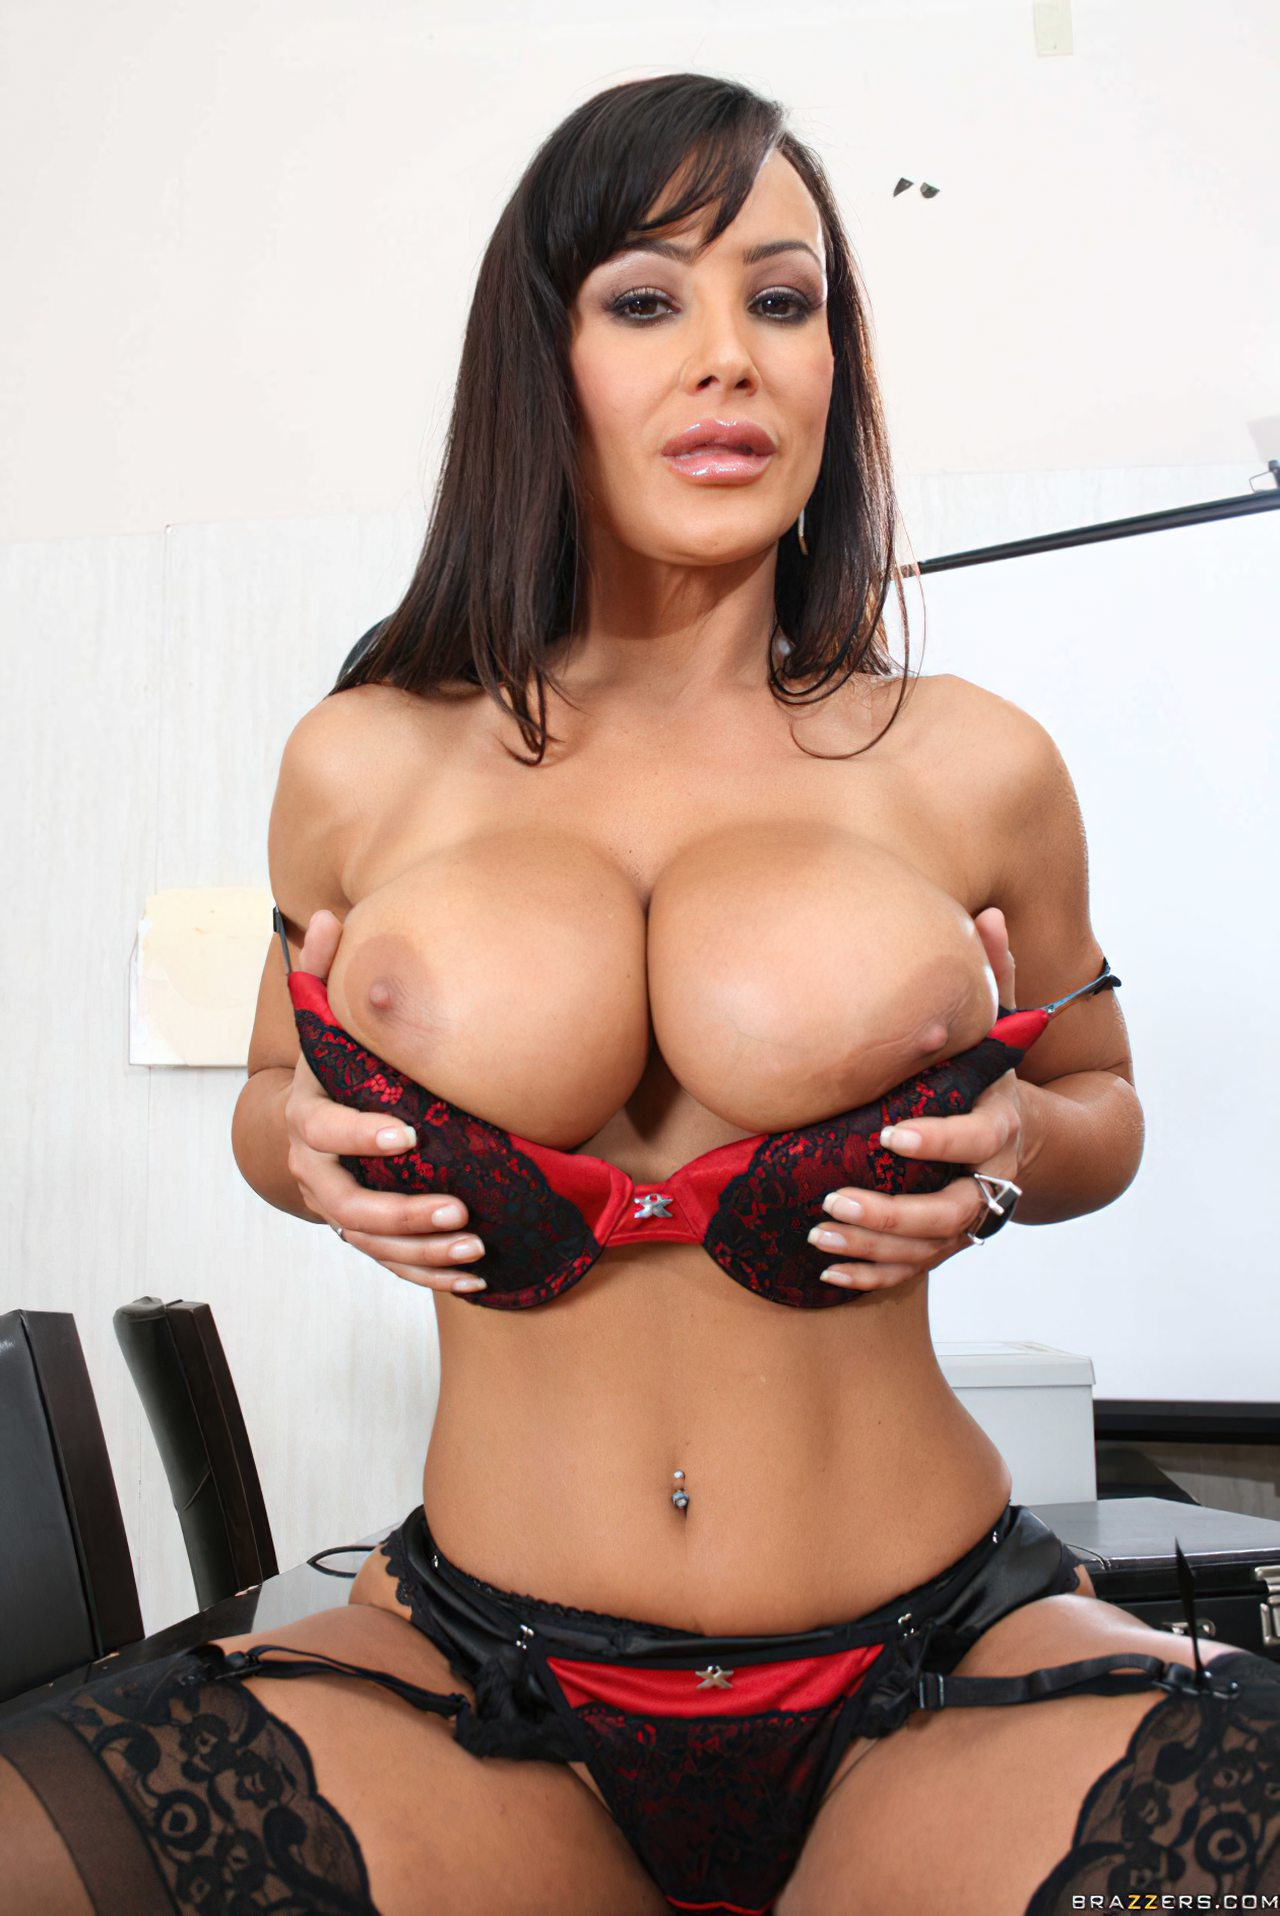 vídeos travestis videos de lisa ann